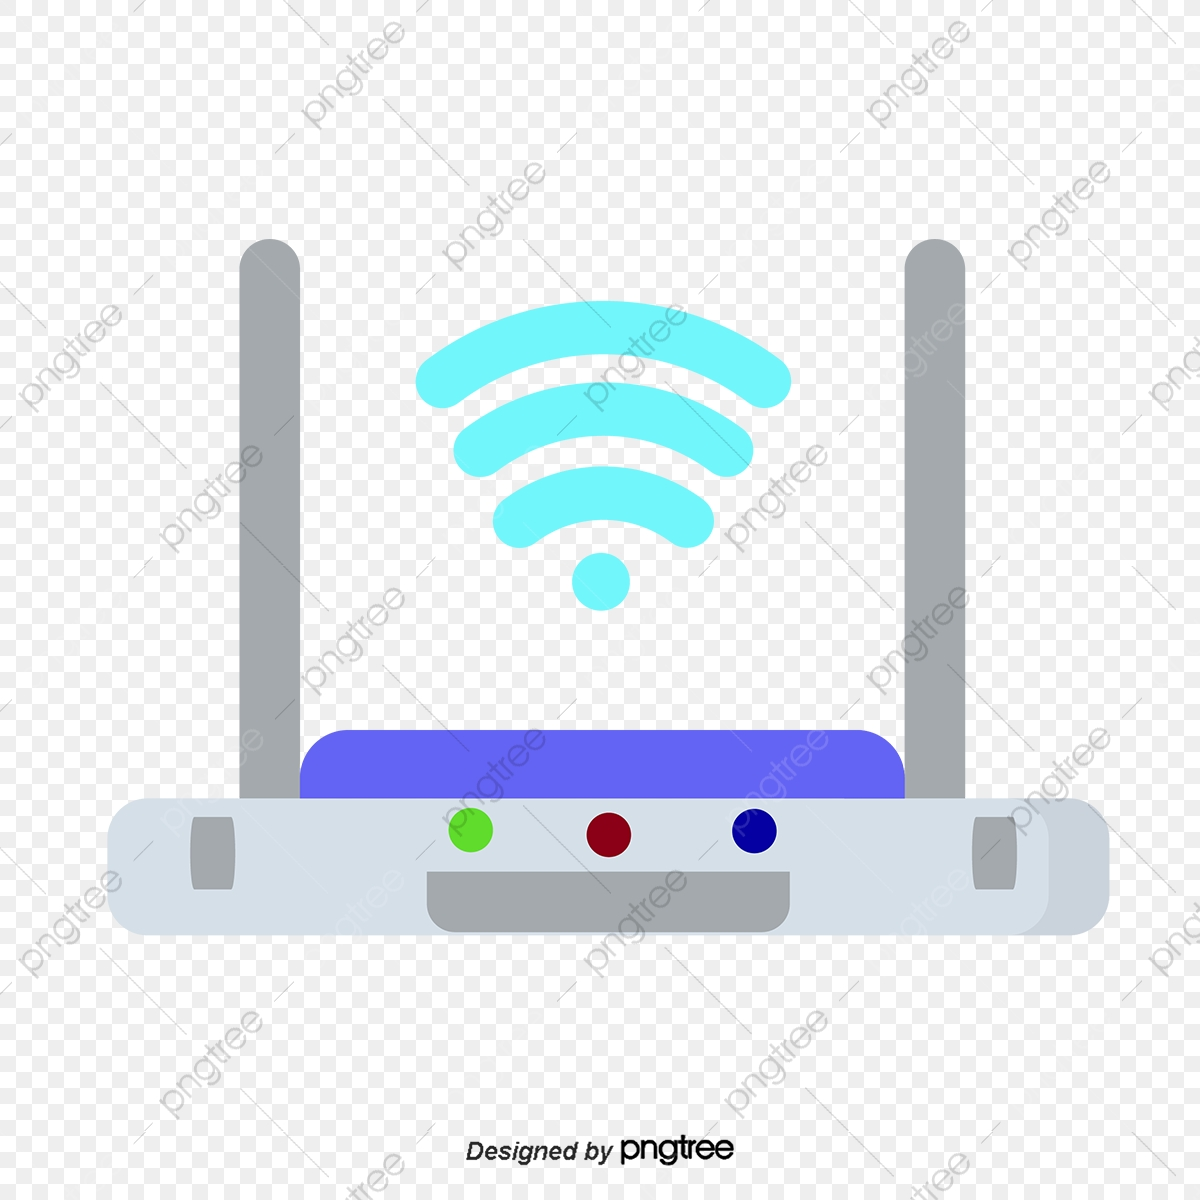 Router Wifi Cartoon Png And Vector With Transparent Background For Free Download